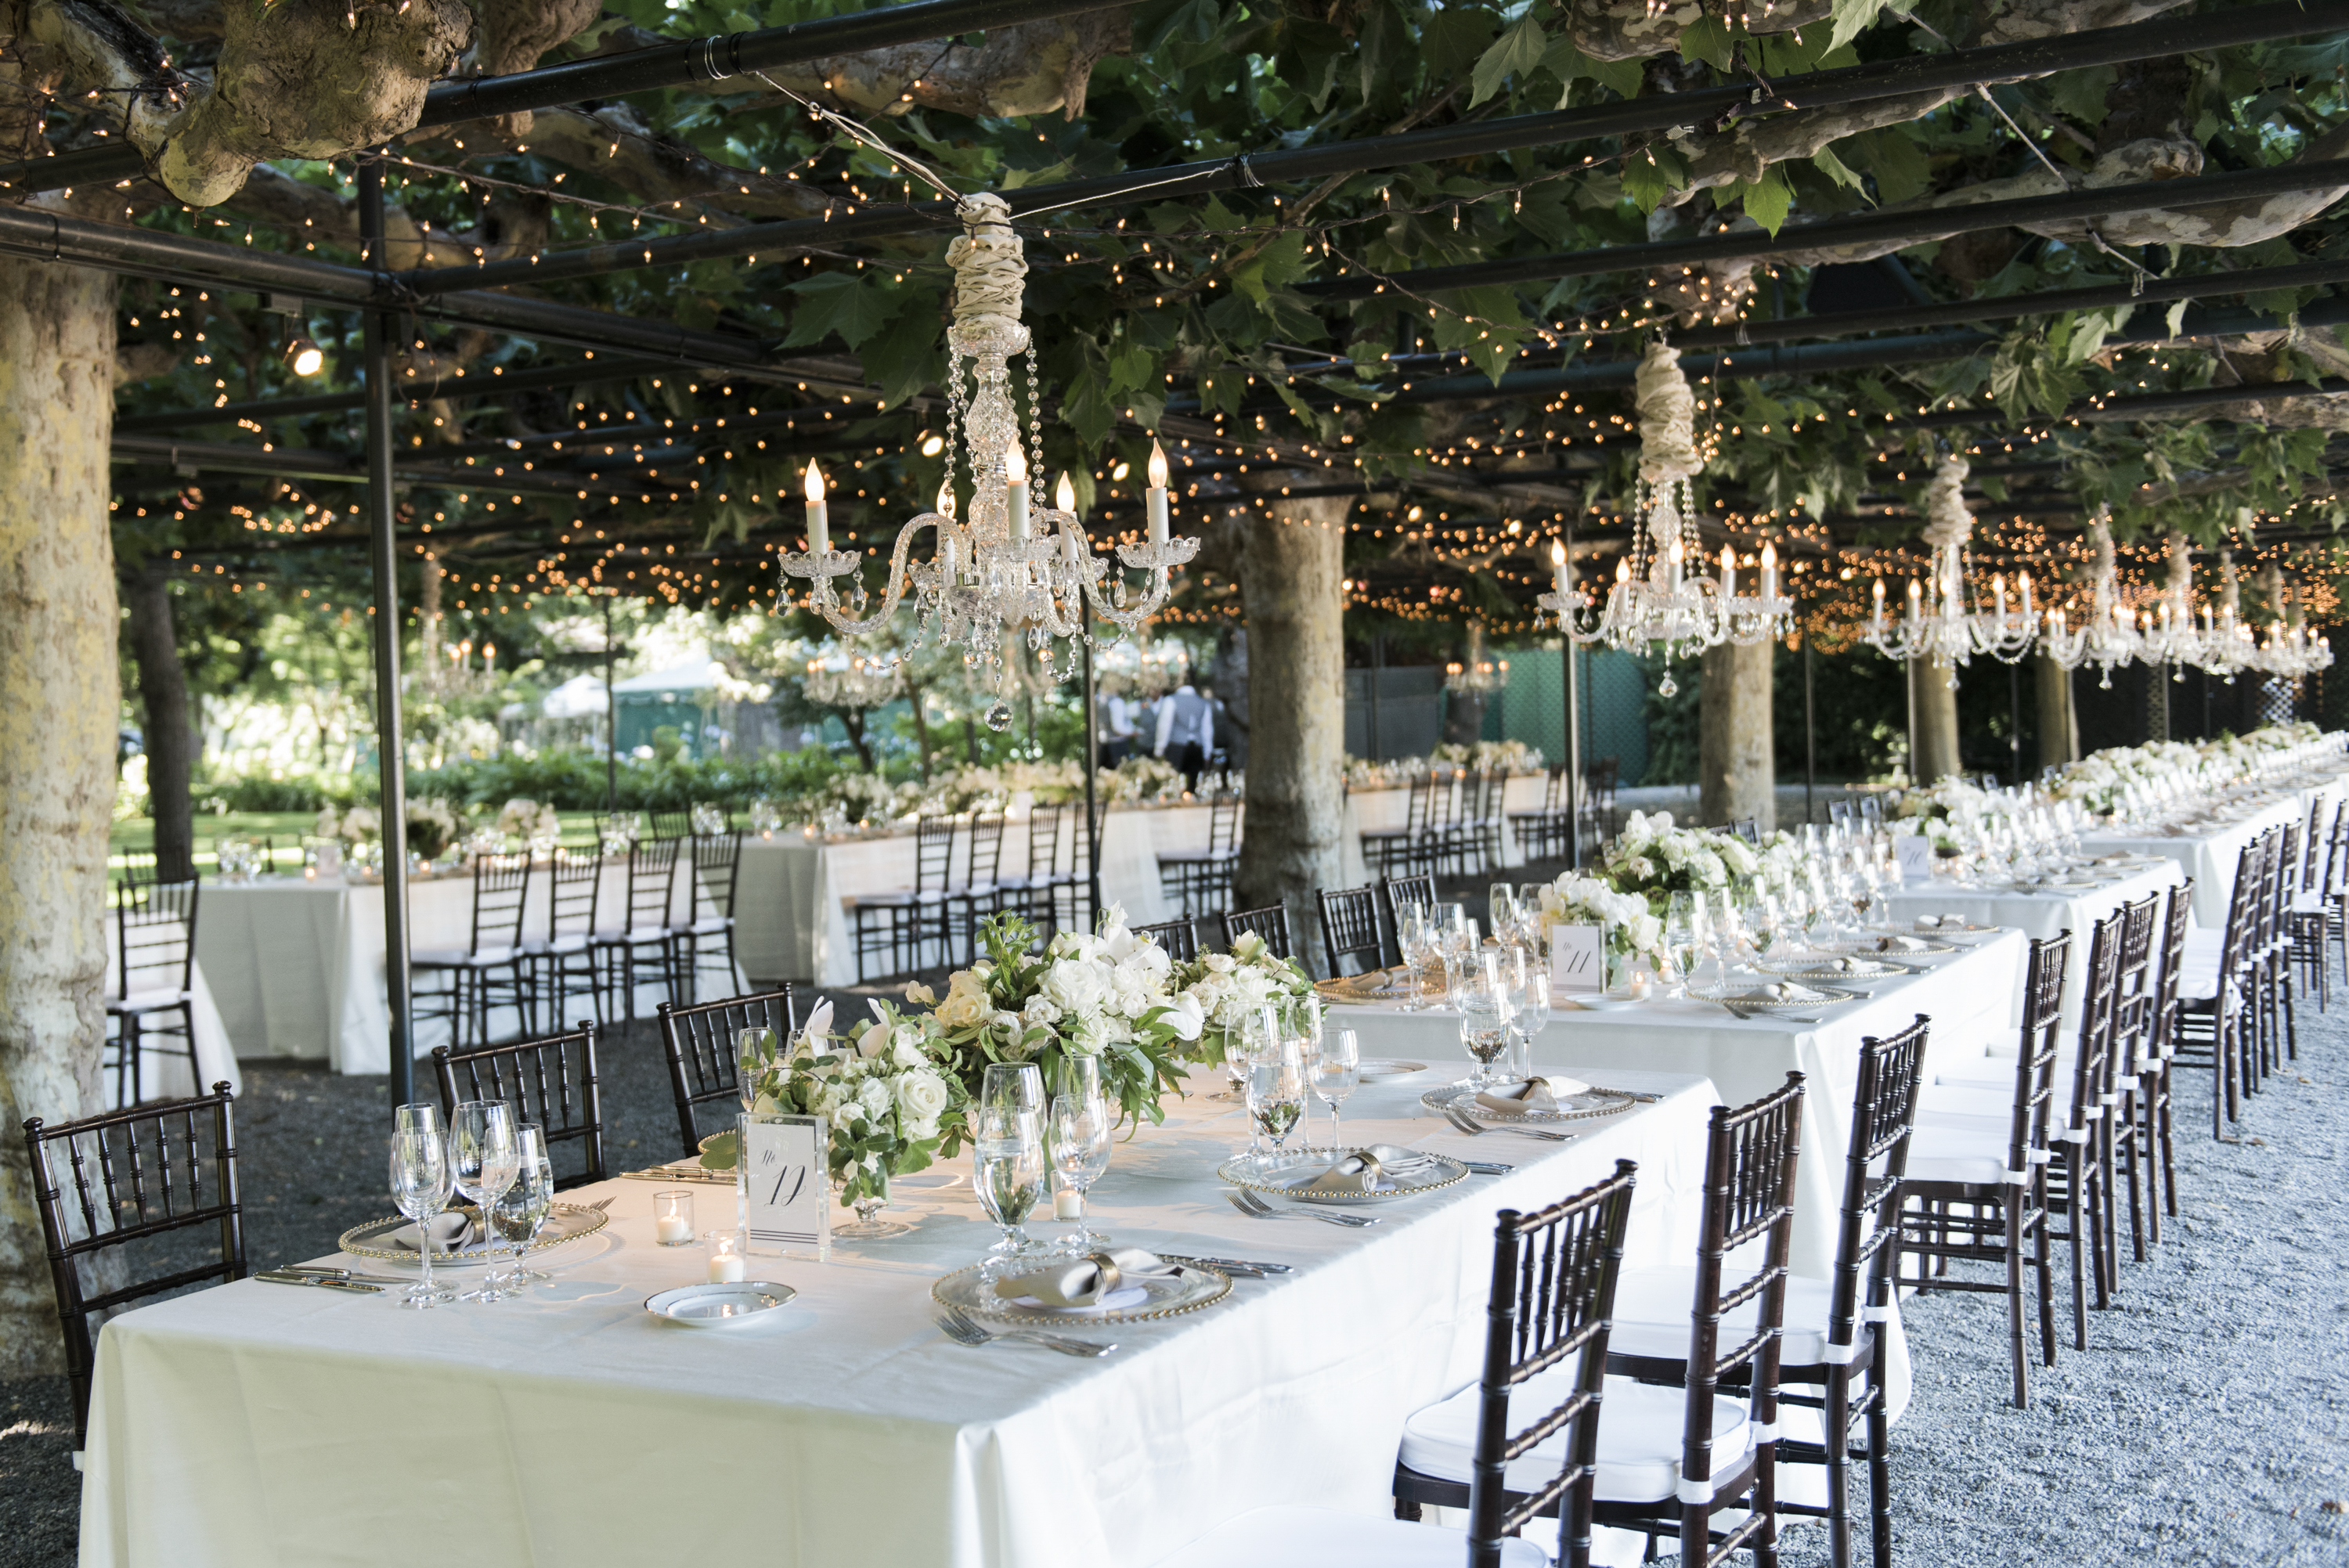 encore events rentals is your premier events rental company locally owned for over 30 years we have three locations serving the wine country and the